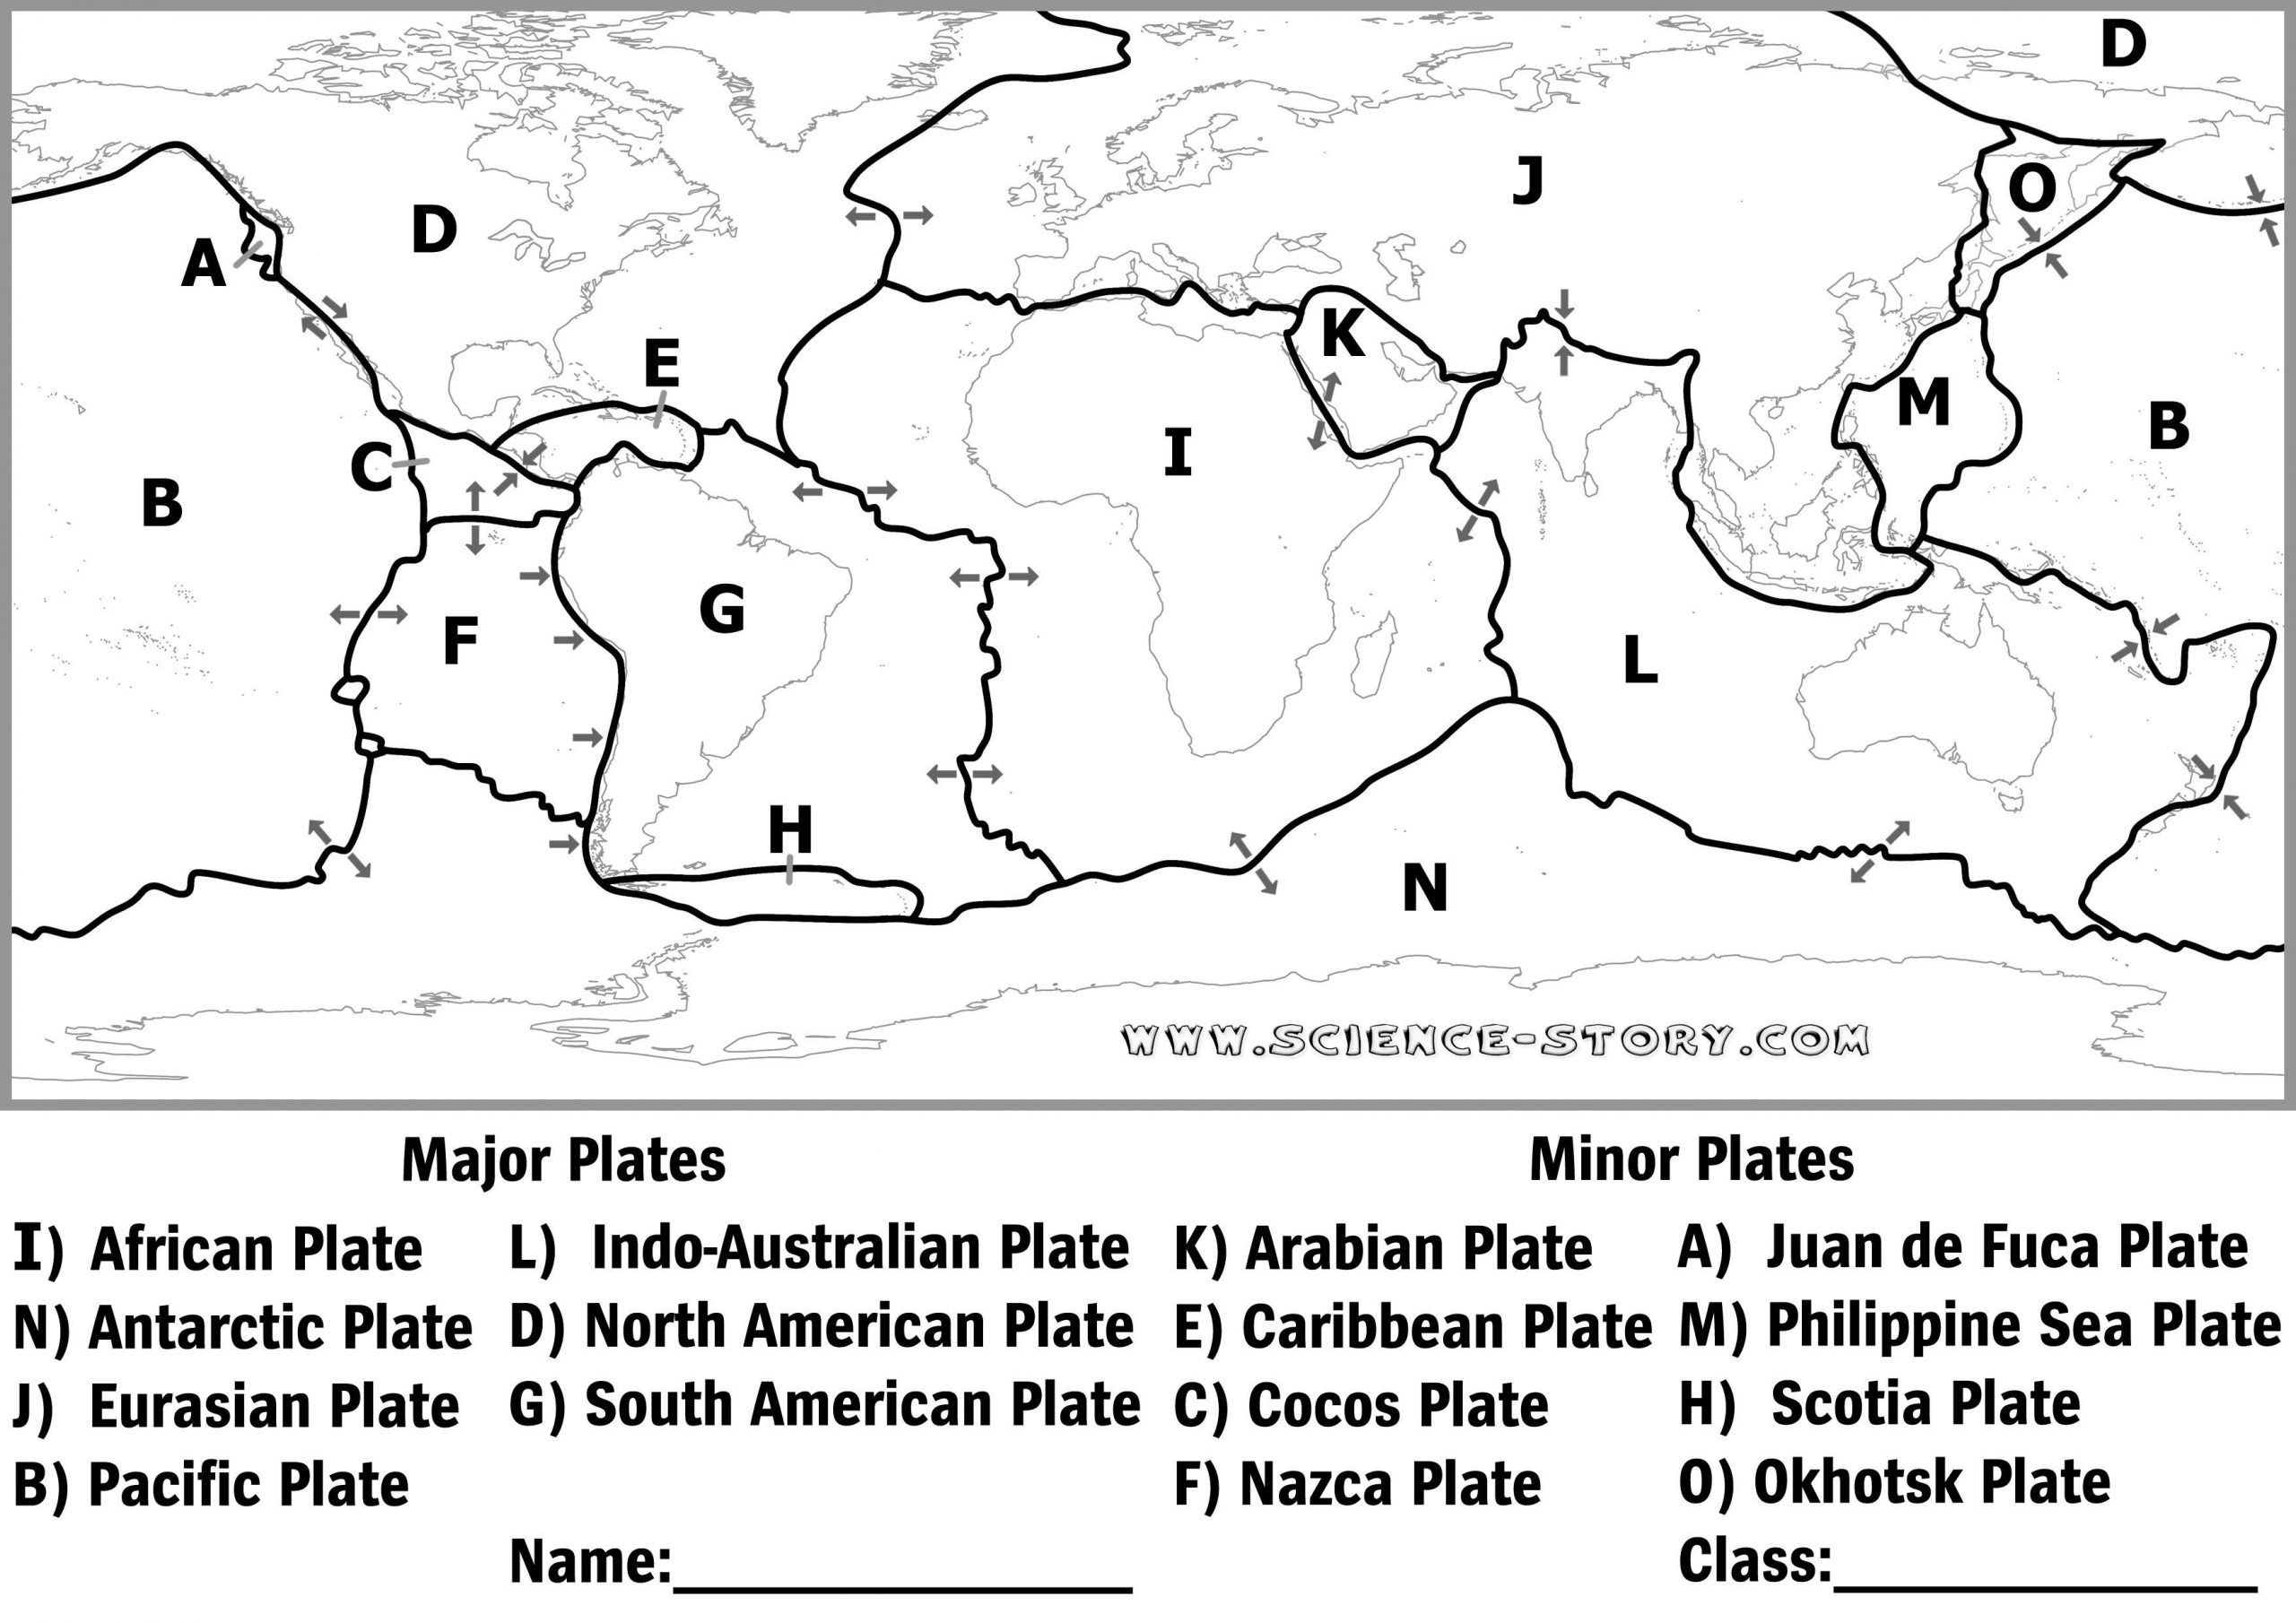 Plate Tectonics Worksheet 6th Grade Plate Tectonics Diagram Black and White Google Search